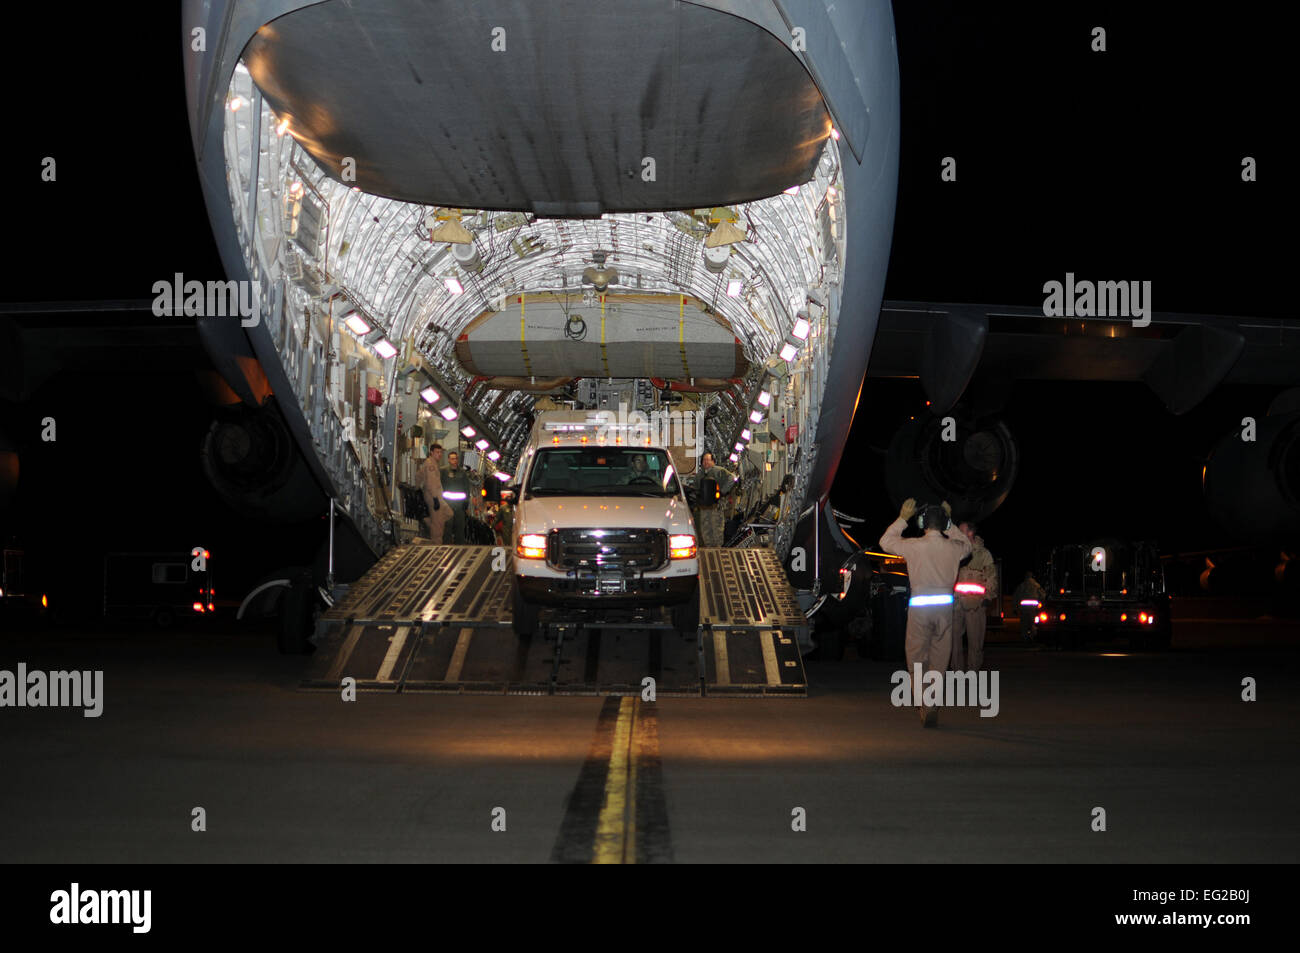 STEWART AIR NATIONAL GUARD BASE, N.Y. --An SUV belonging to New York Task Force 1, New York City's FEMA-sponsored Stock Photo